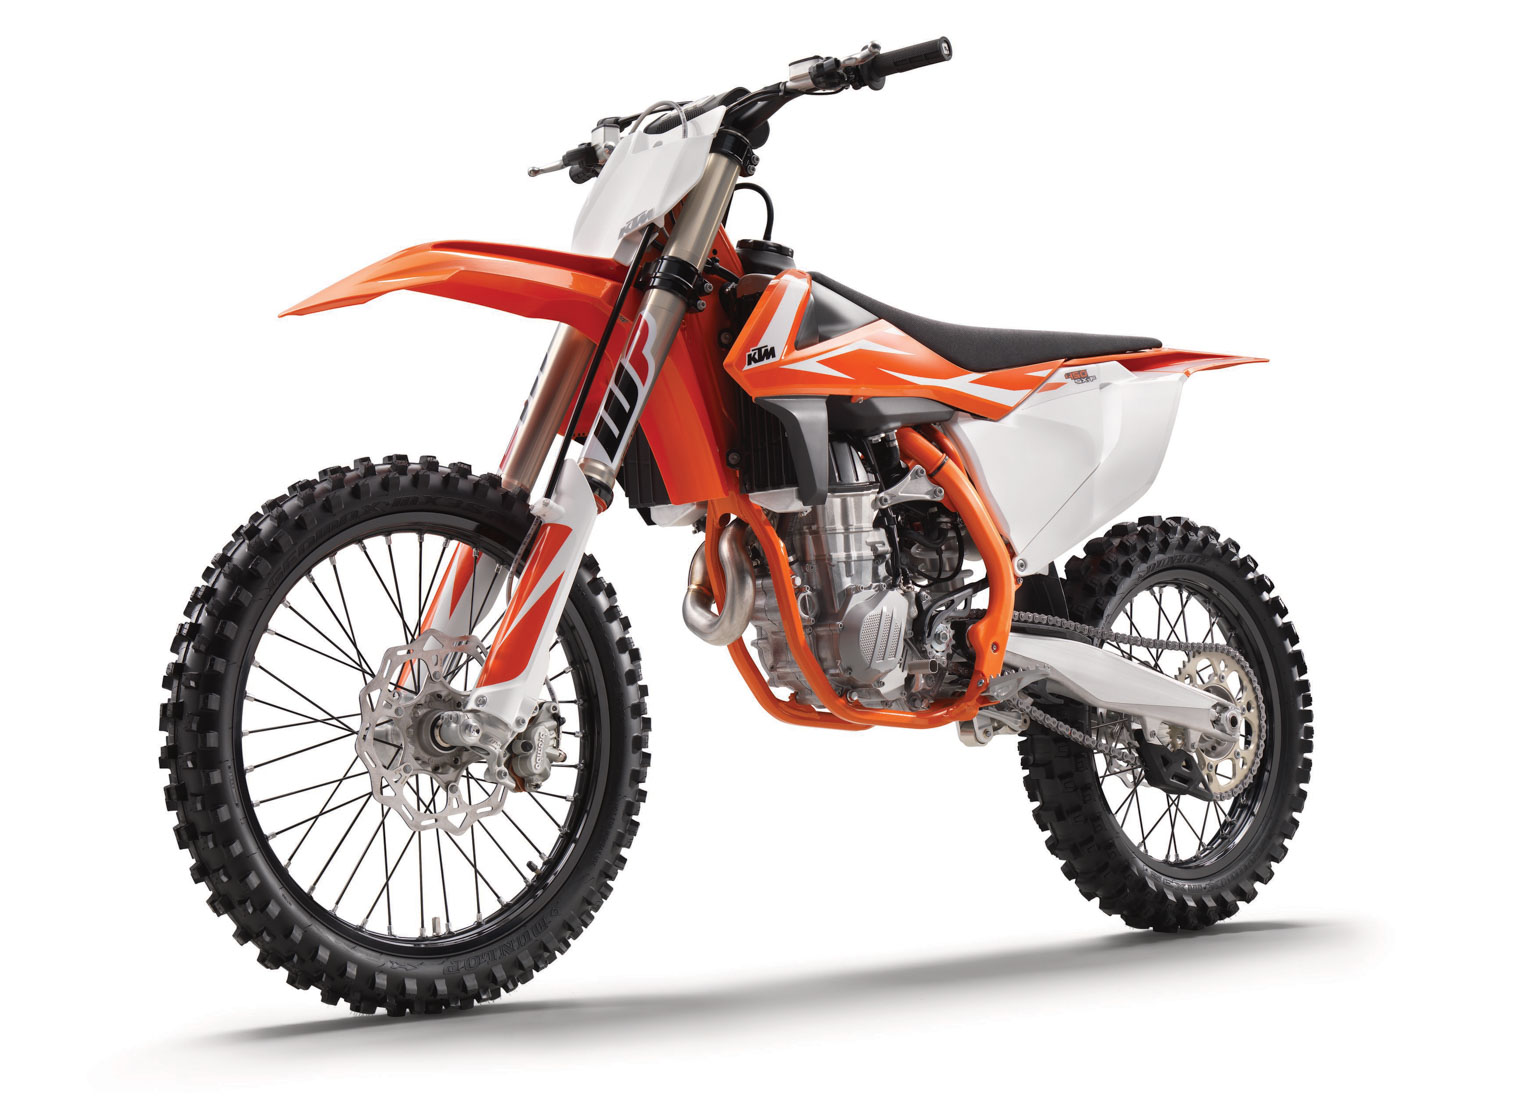 The big boy 450 gets a new orange frame